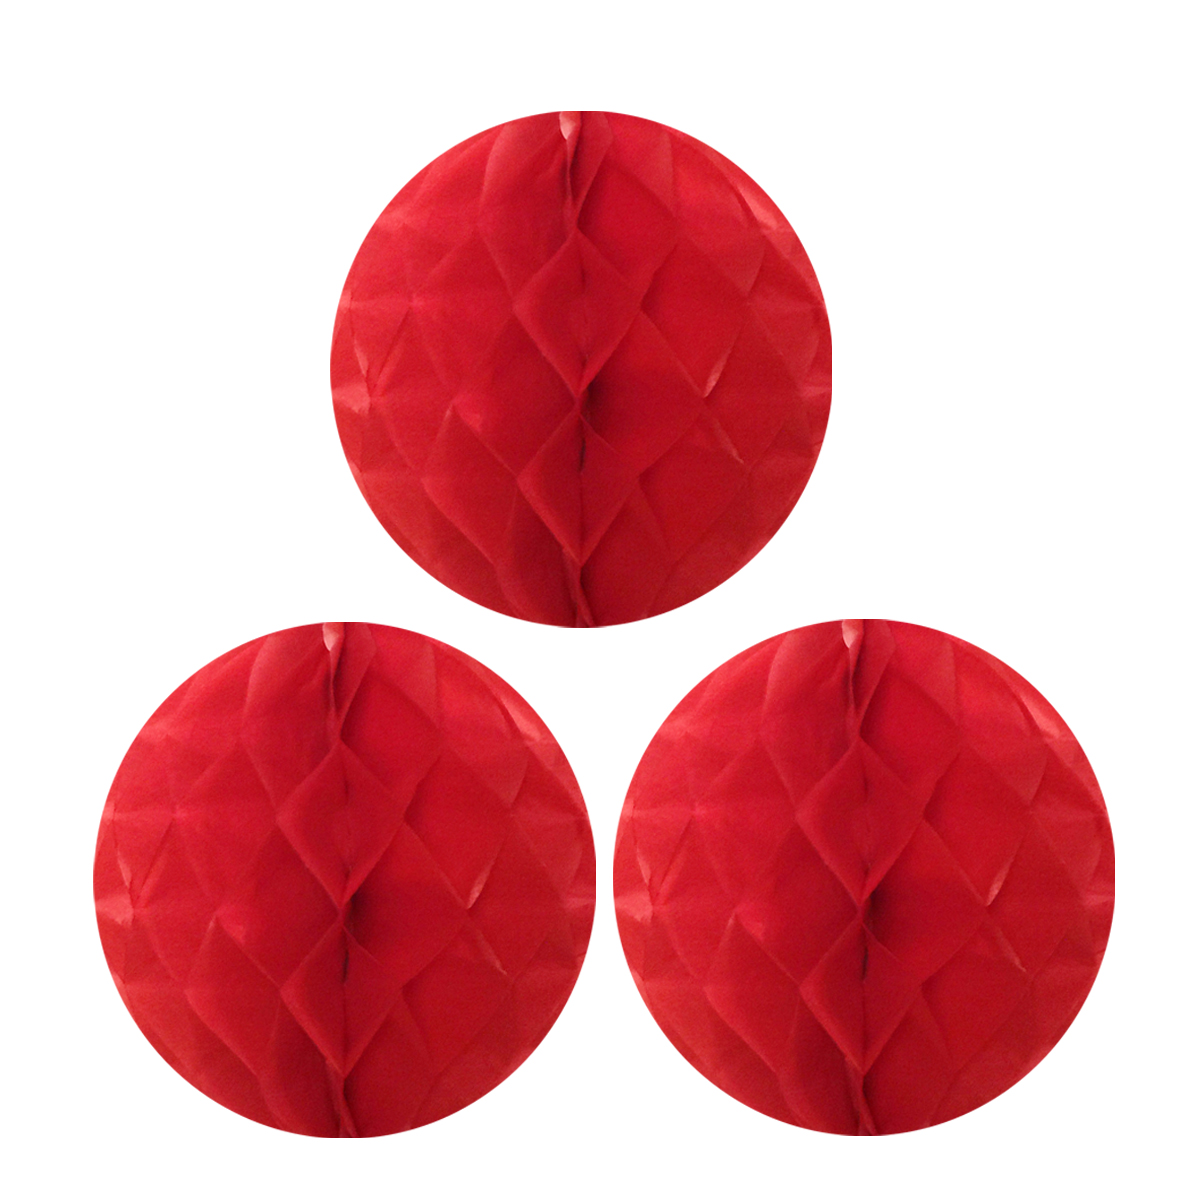 "Wrapables® 10"" Set of 3 Tissue Honeycomb Ball Party Decorations for Weddings, Birthday Parties, Baby Showers, and Nursery Décor, Red"